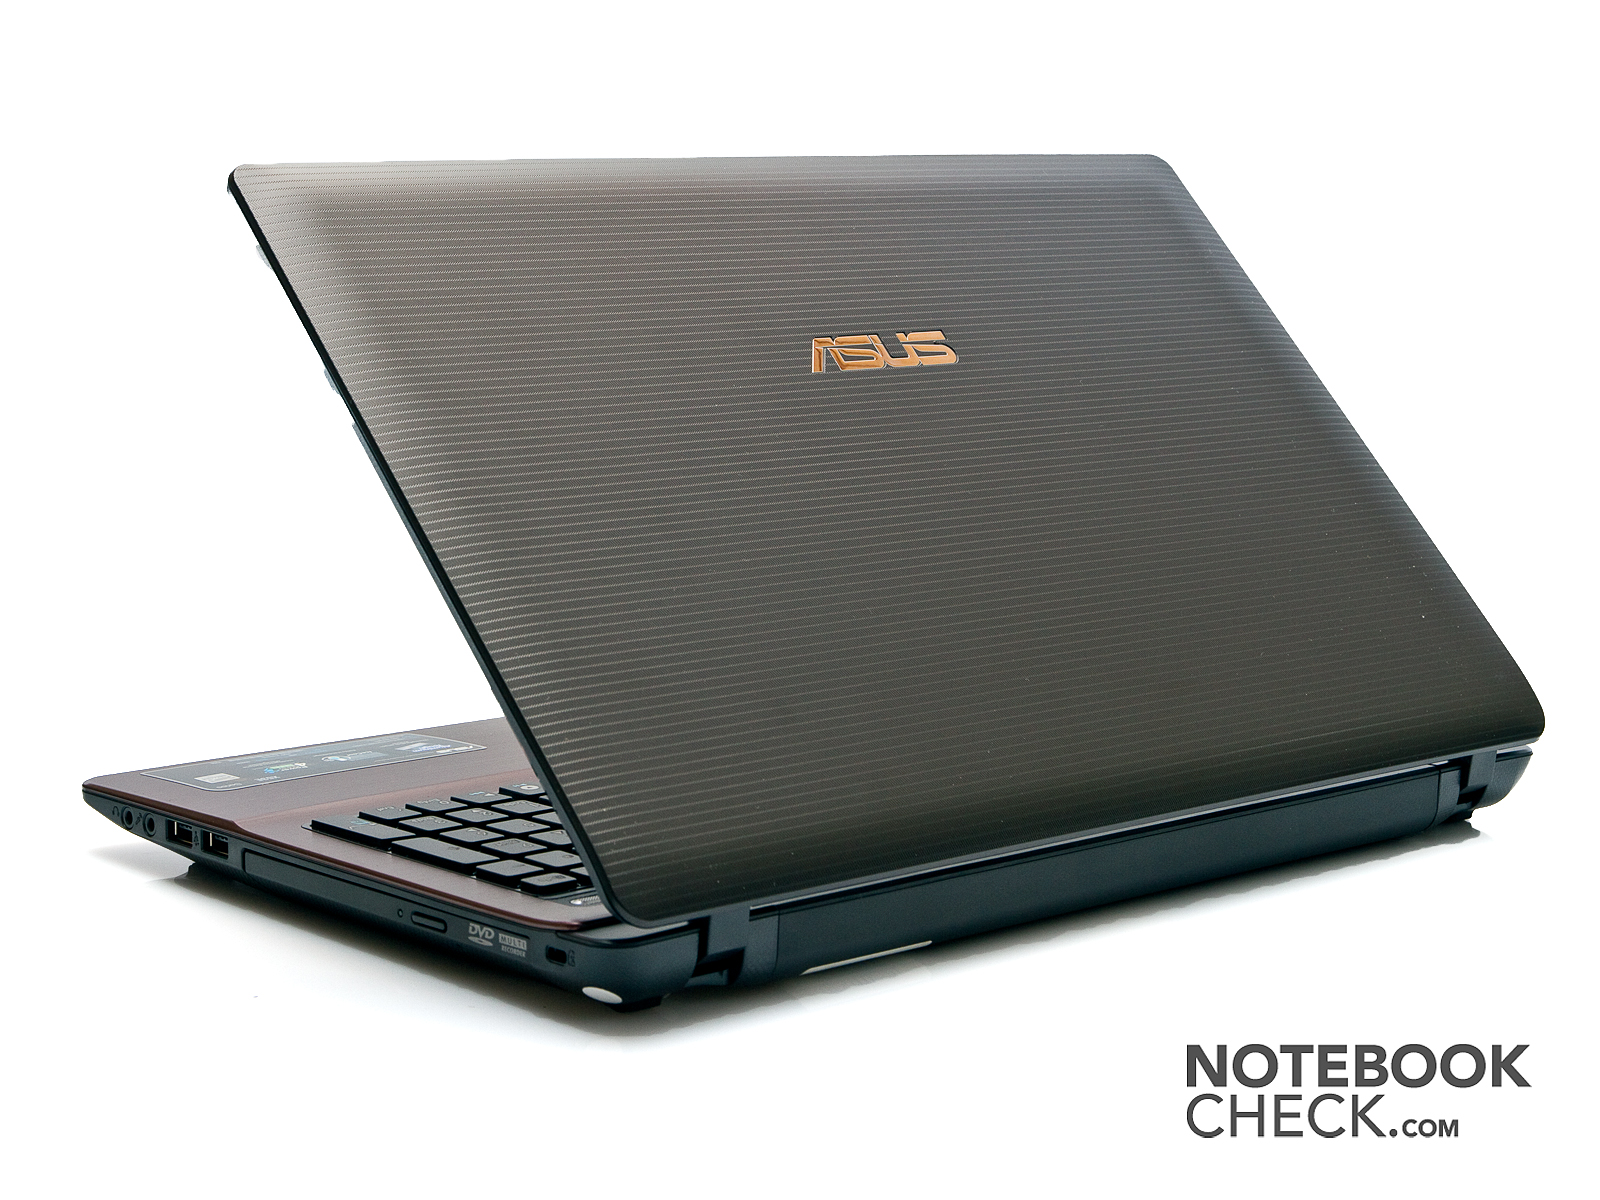 Review Asus X53e Sx082v Notebook Reviews Amd Kaveri A6 7400k Radeon R4 Series 35ghz Cache 2x1mb 65w Socket Fm2 Ad740kybjabox Verdict